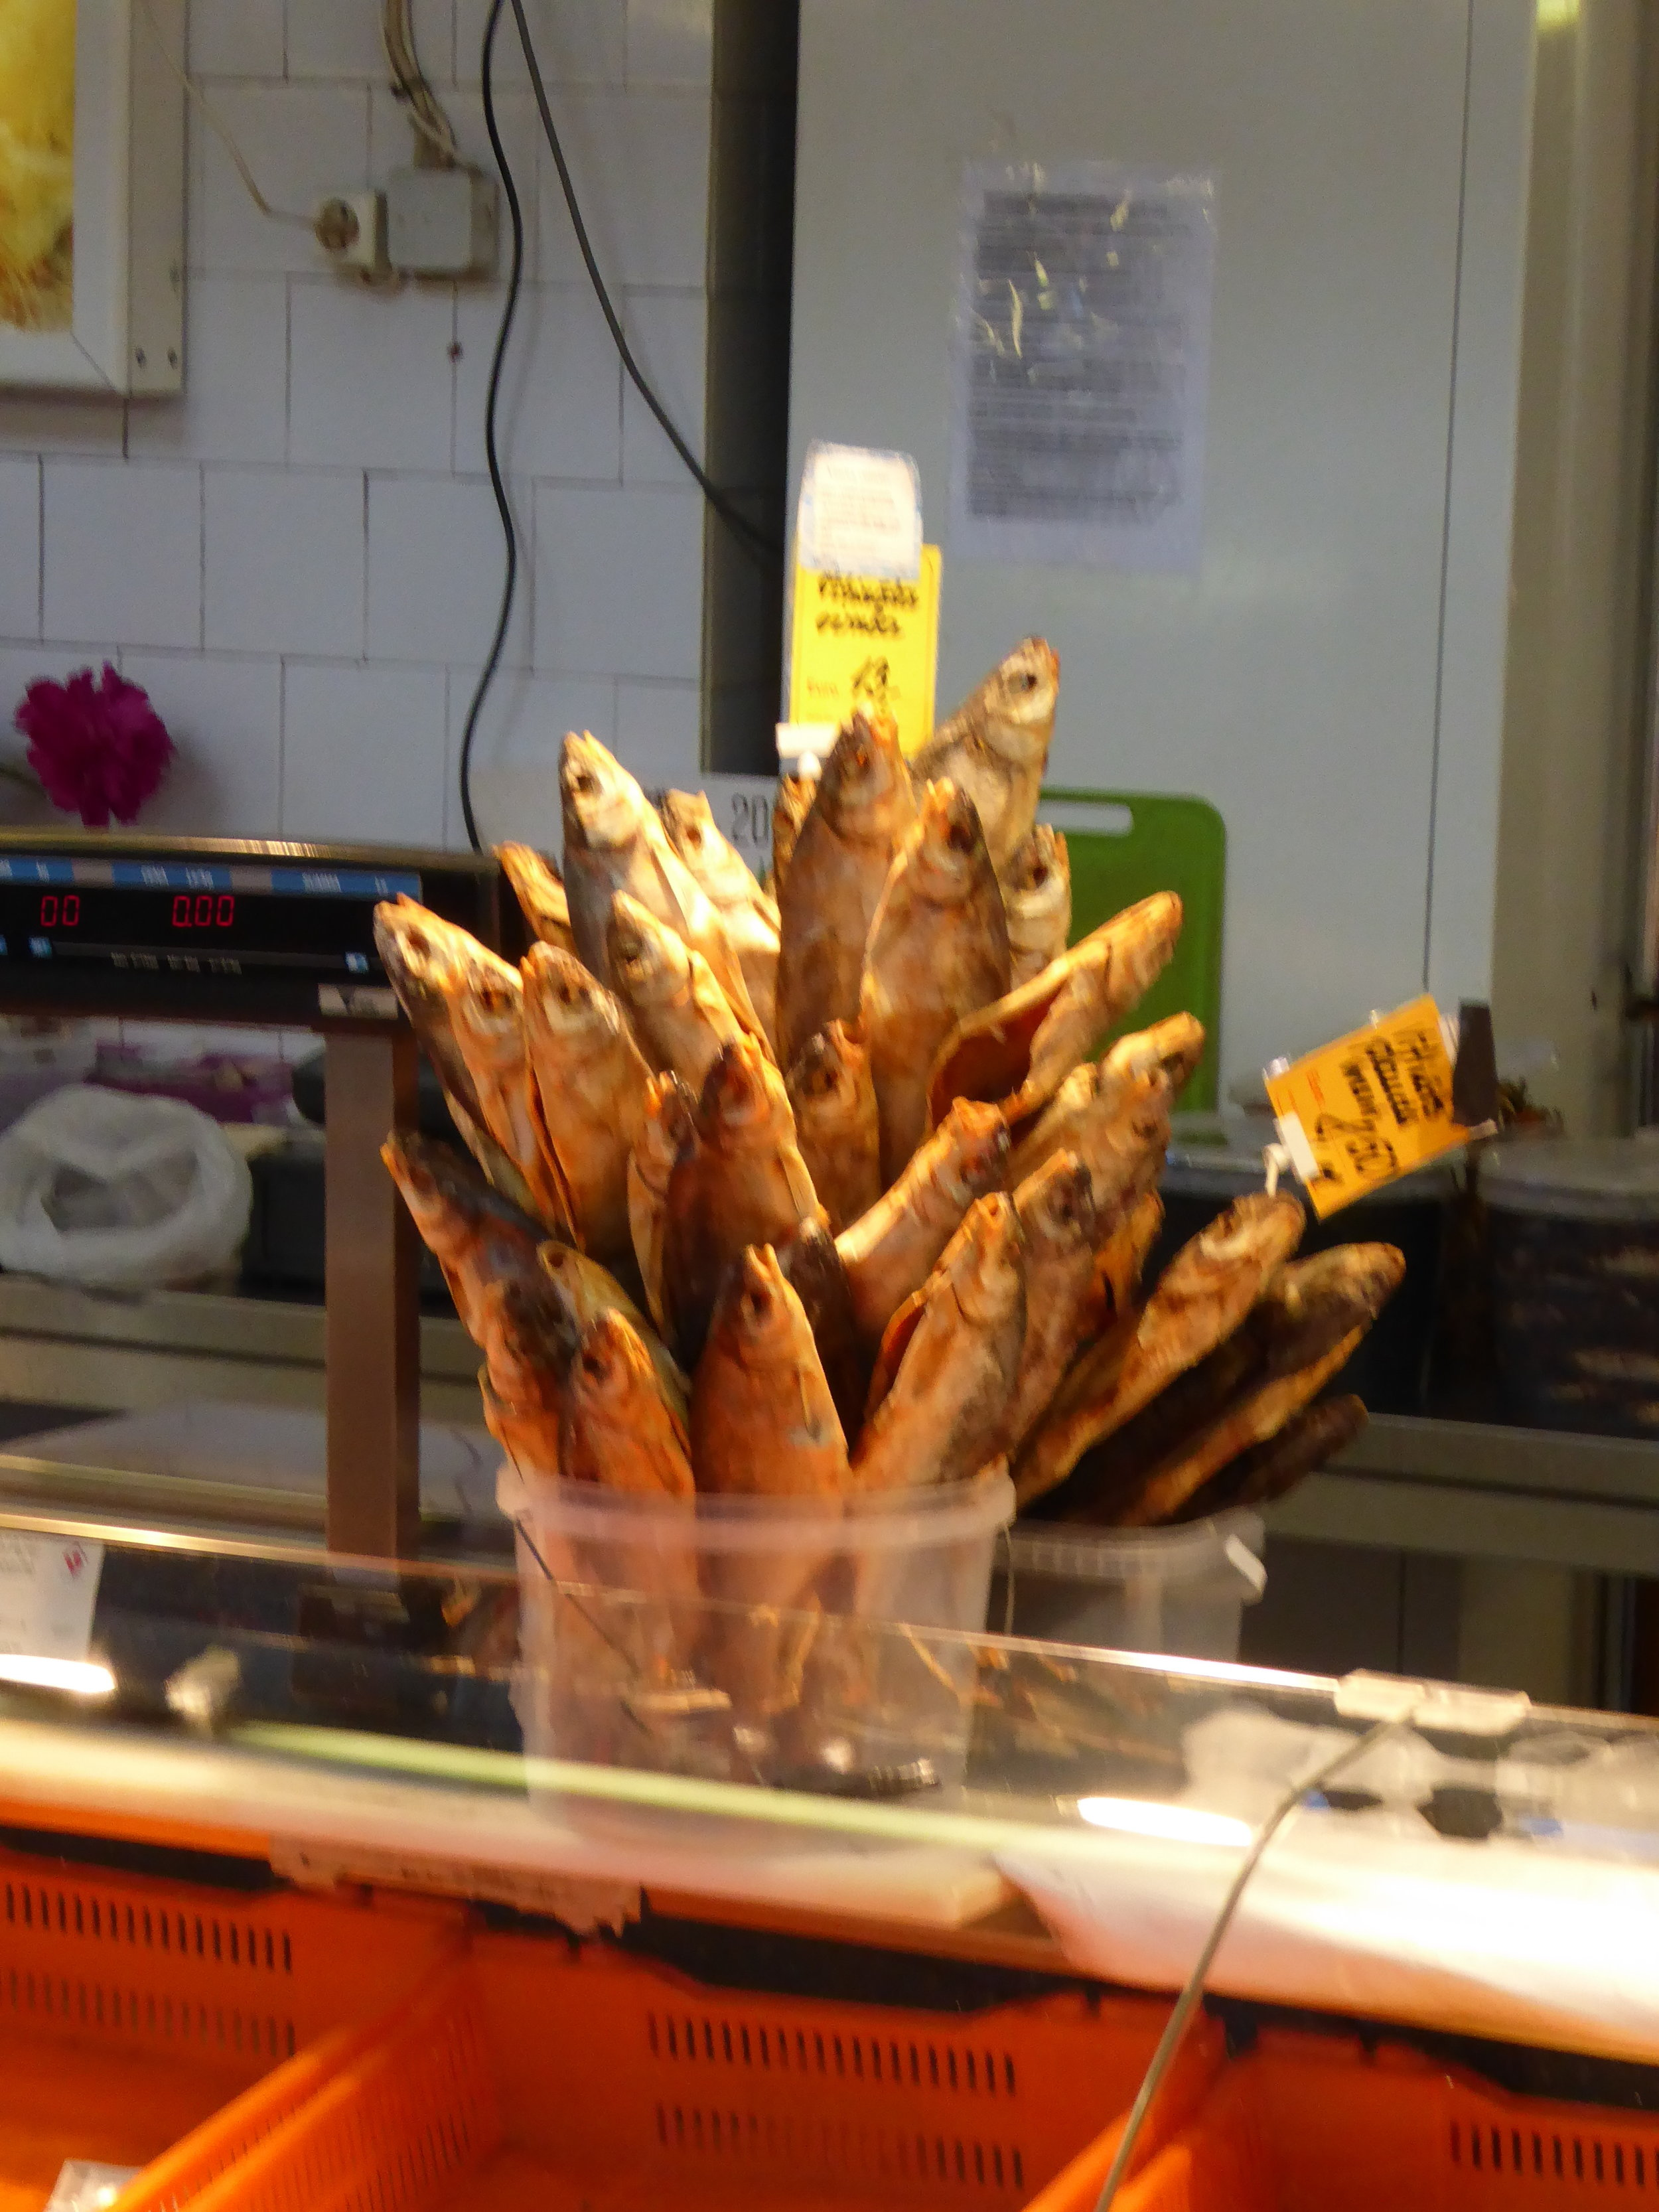 Buyer beware when you order the fish sticks at the public market.